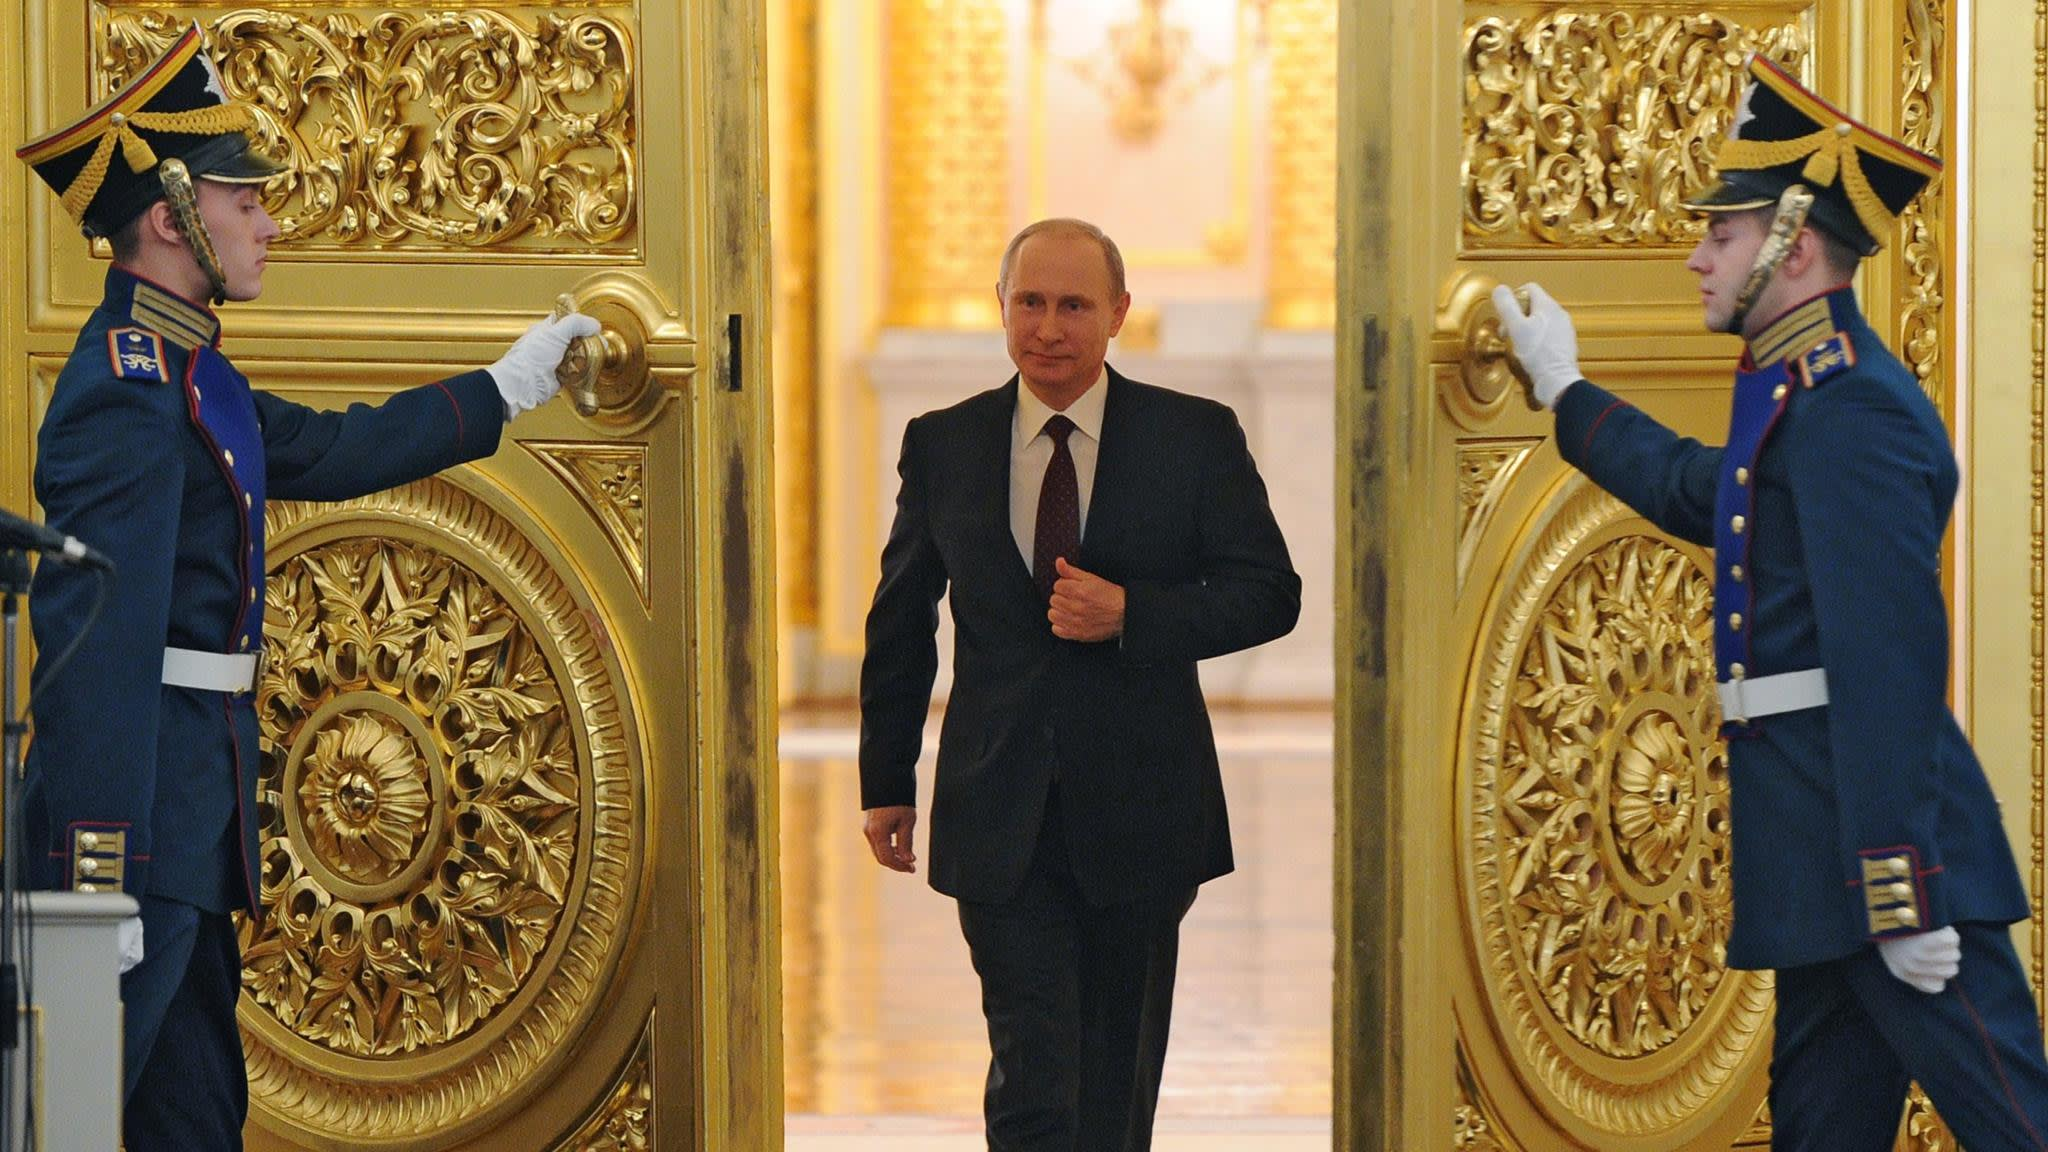 Russia trades will not follow Greek game theory | Financial Times